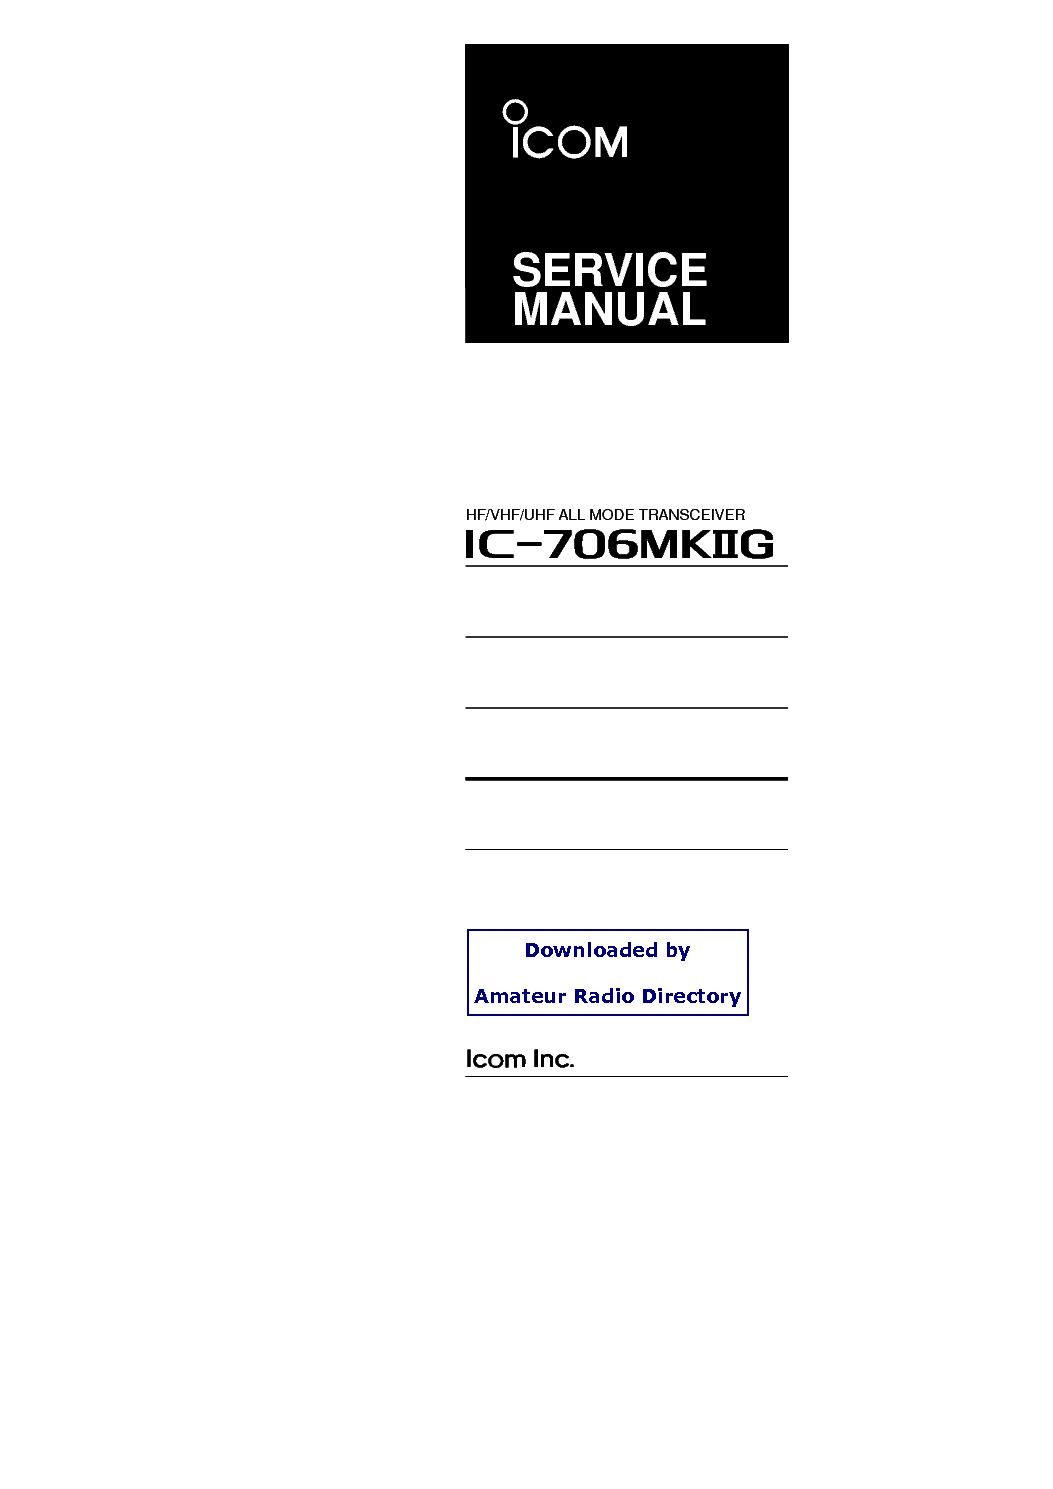 ICOM IC-706MKIIG ICOM IC-706MKIIG SERVICE MANUAL